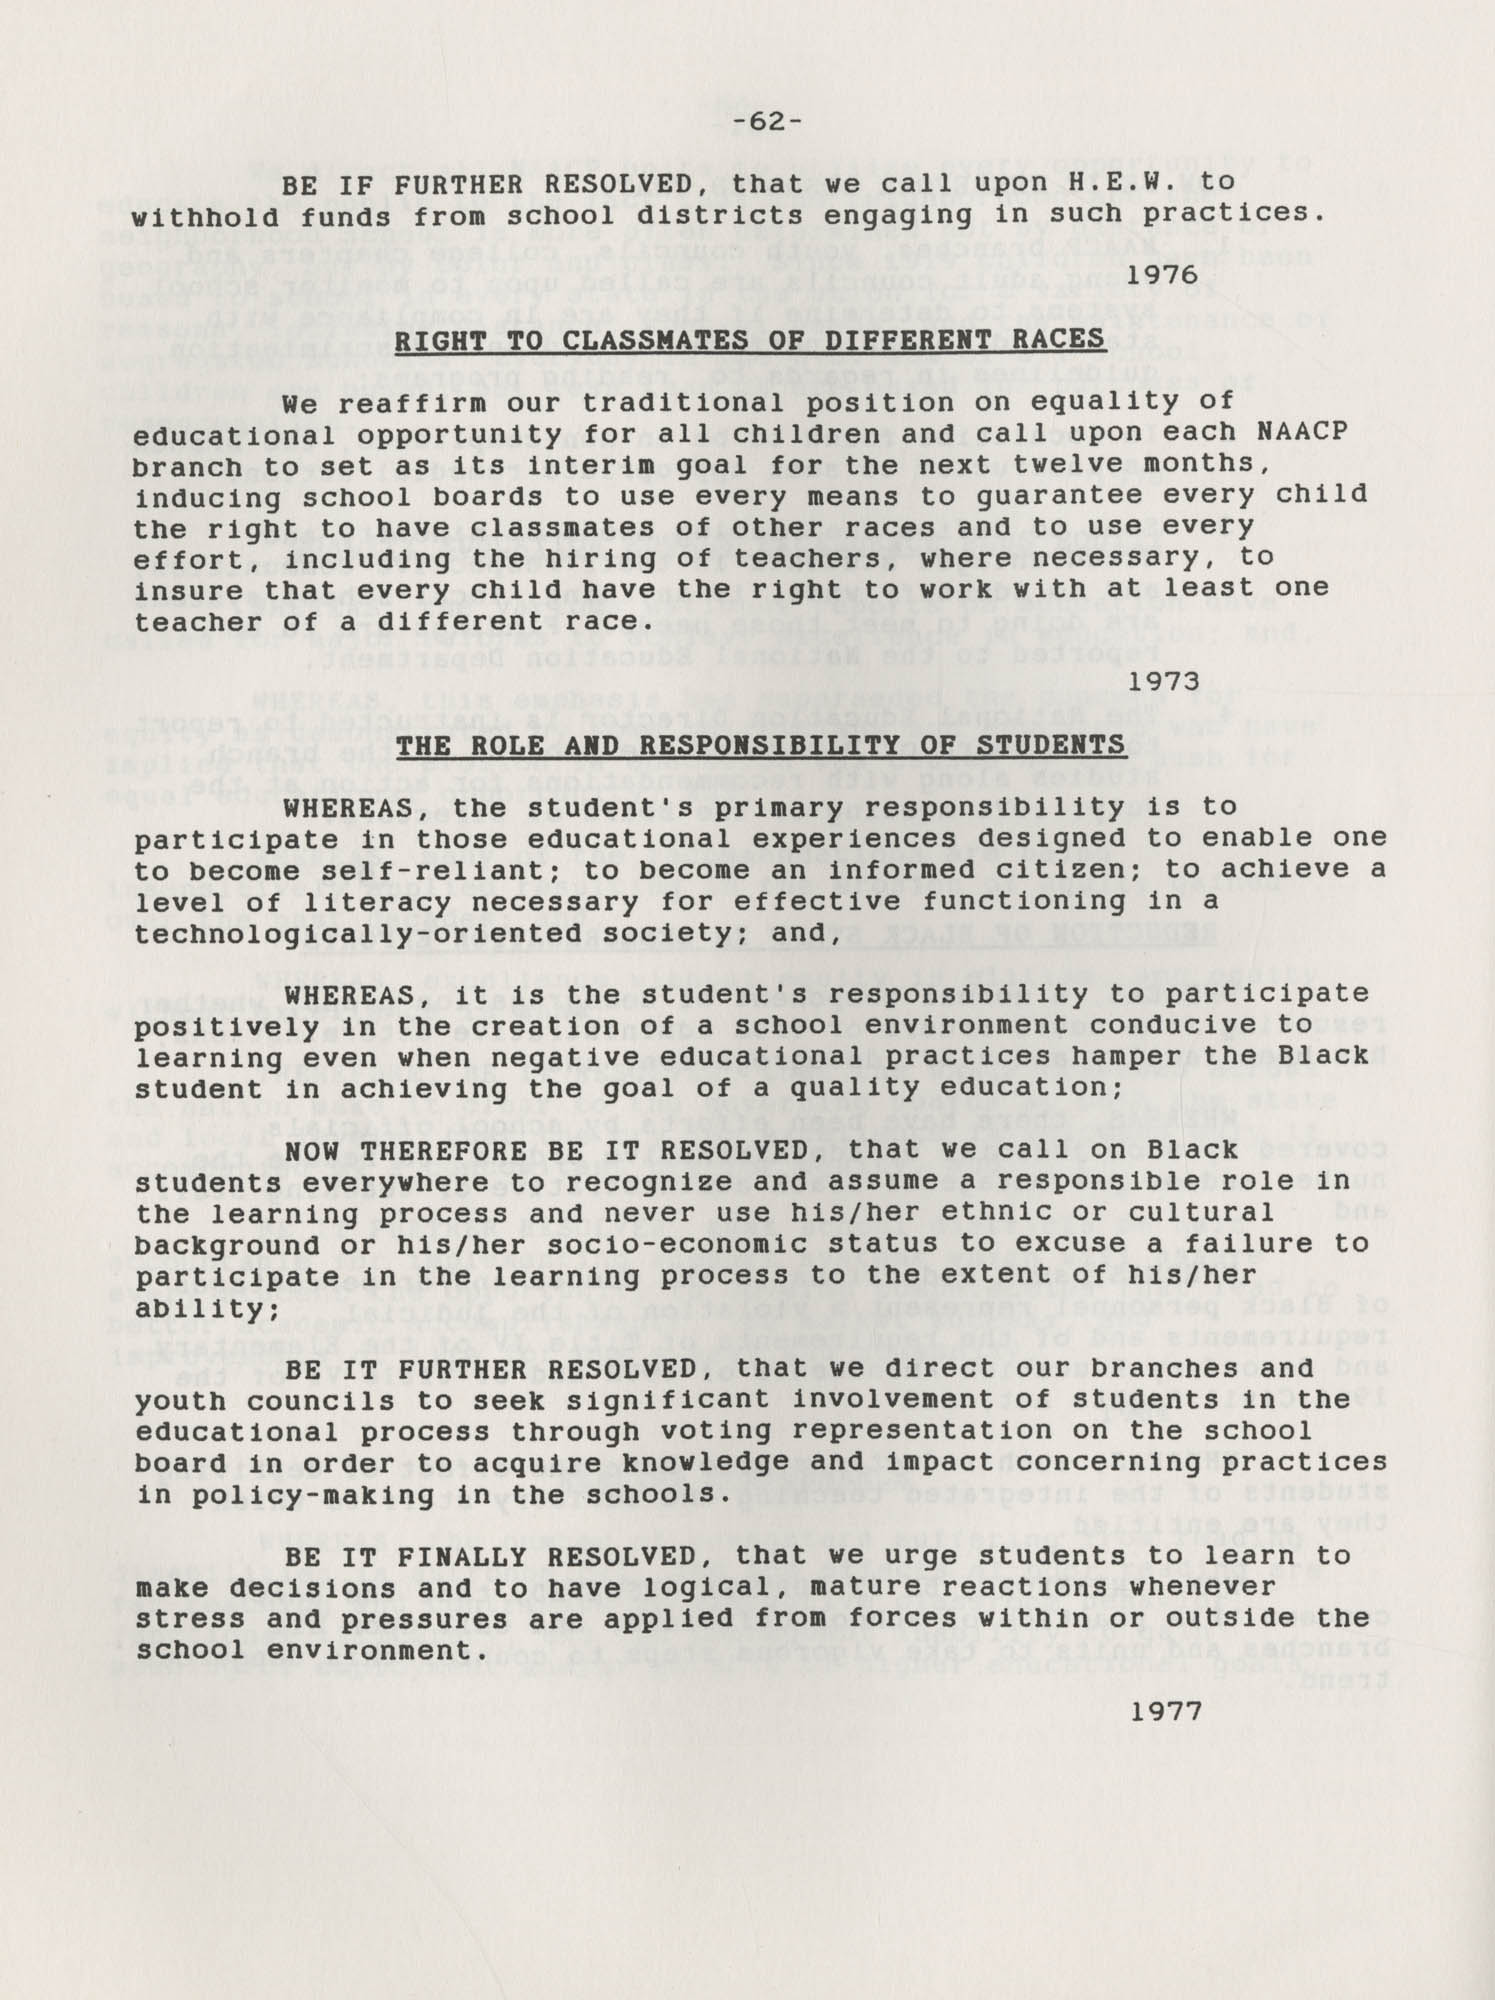 NAACP Resolutions on Education, 1970-1989, Index to Education Resolutions, Page 62